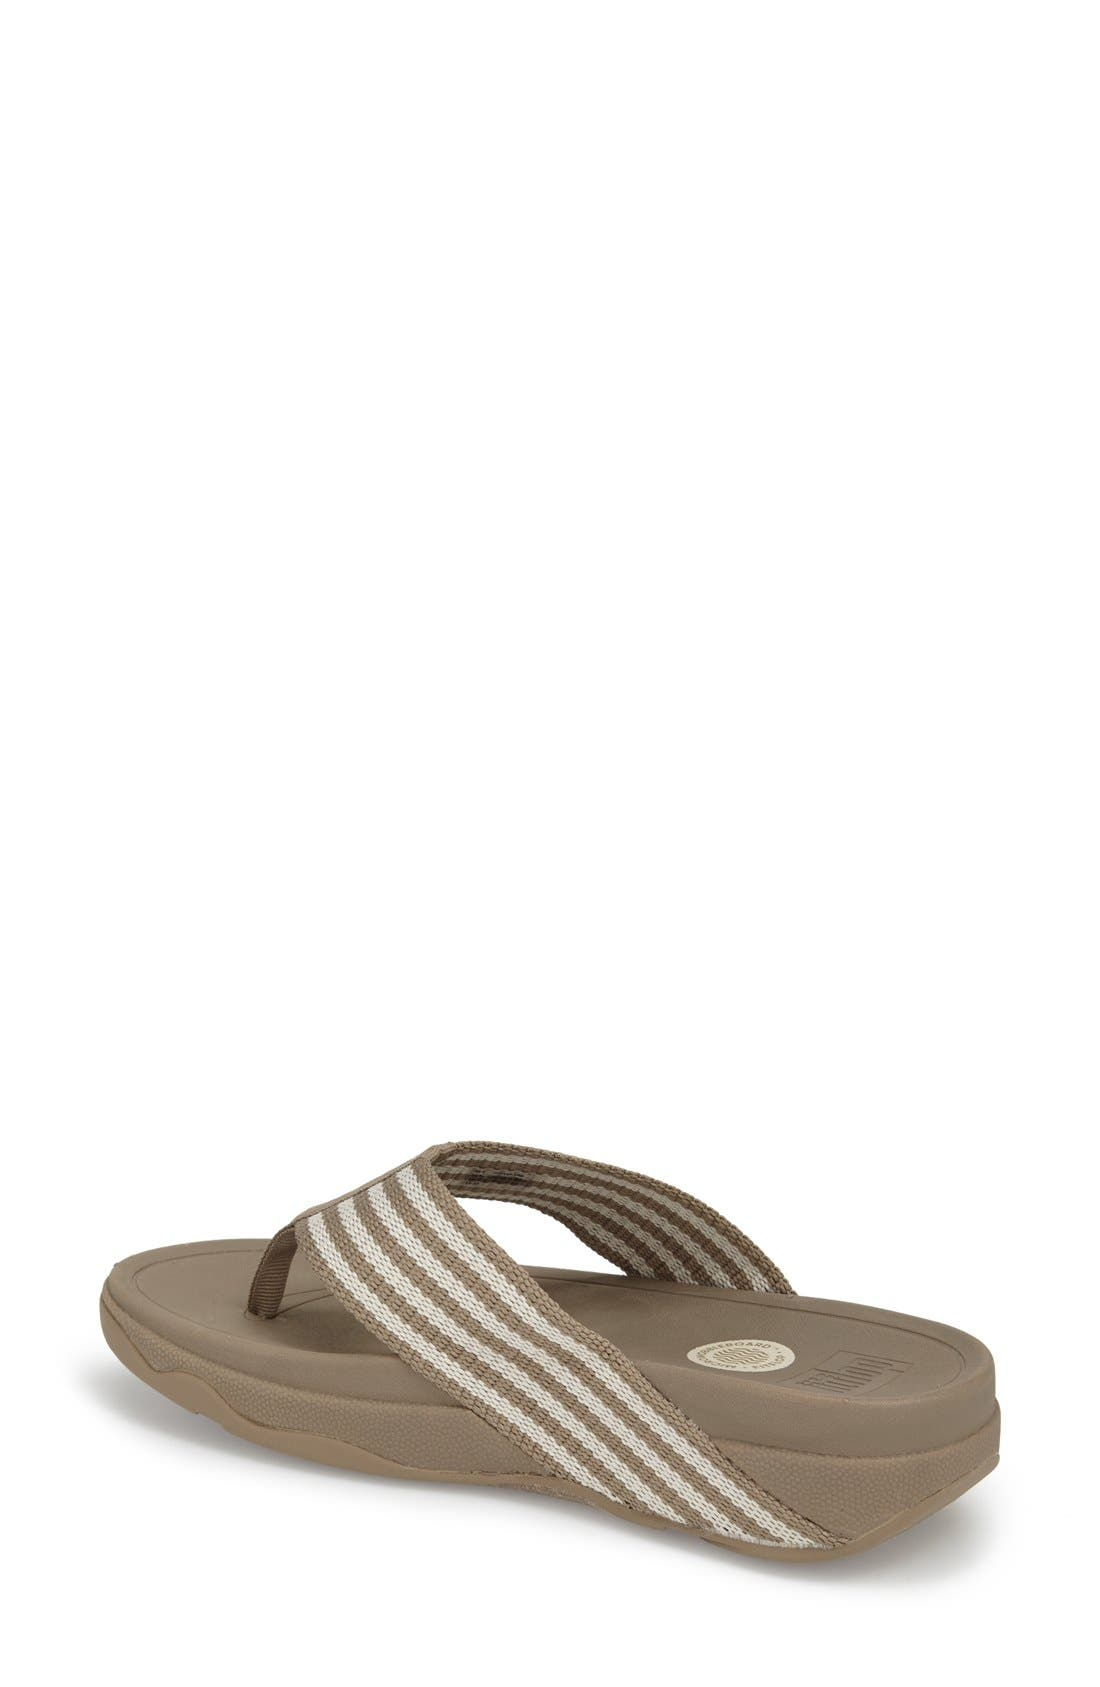 'Surfa' Thong Sandal,                             Alternate thumbnail 13, color,